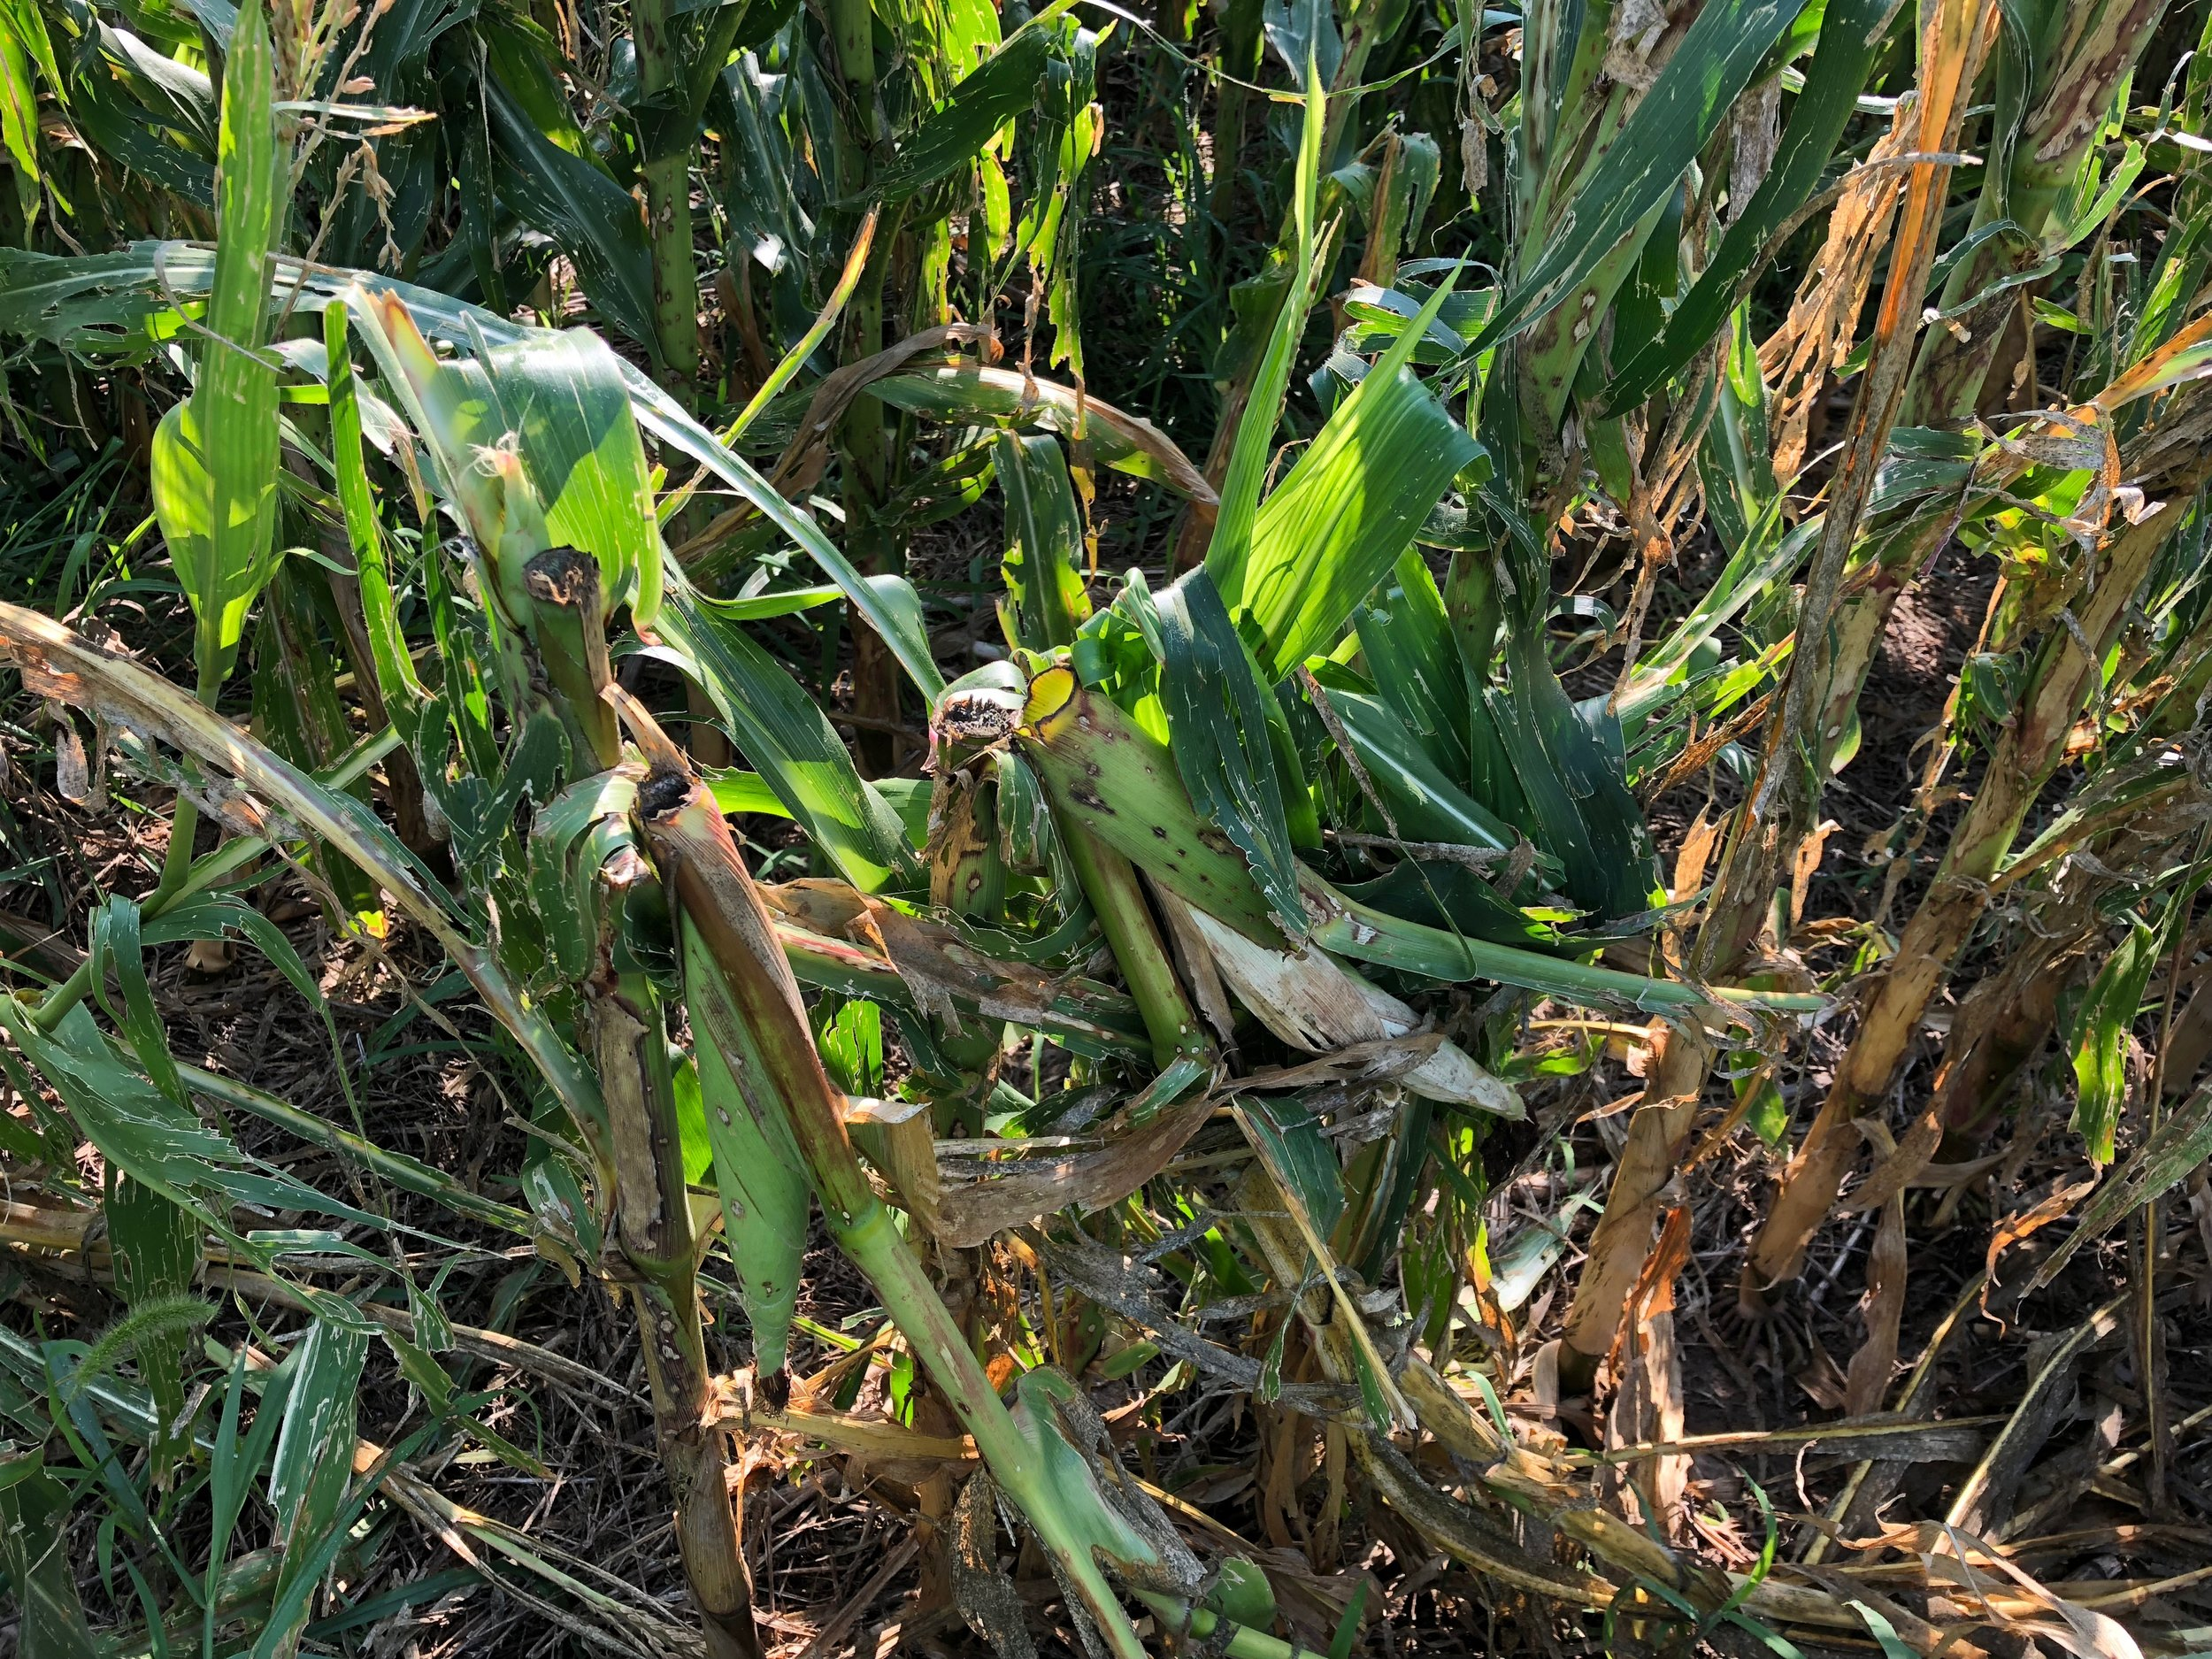 This Antelope county corn looked phenomenal, but was subject to extreme winds and hail causing huge losses.